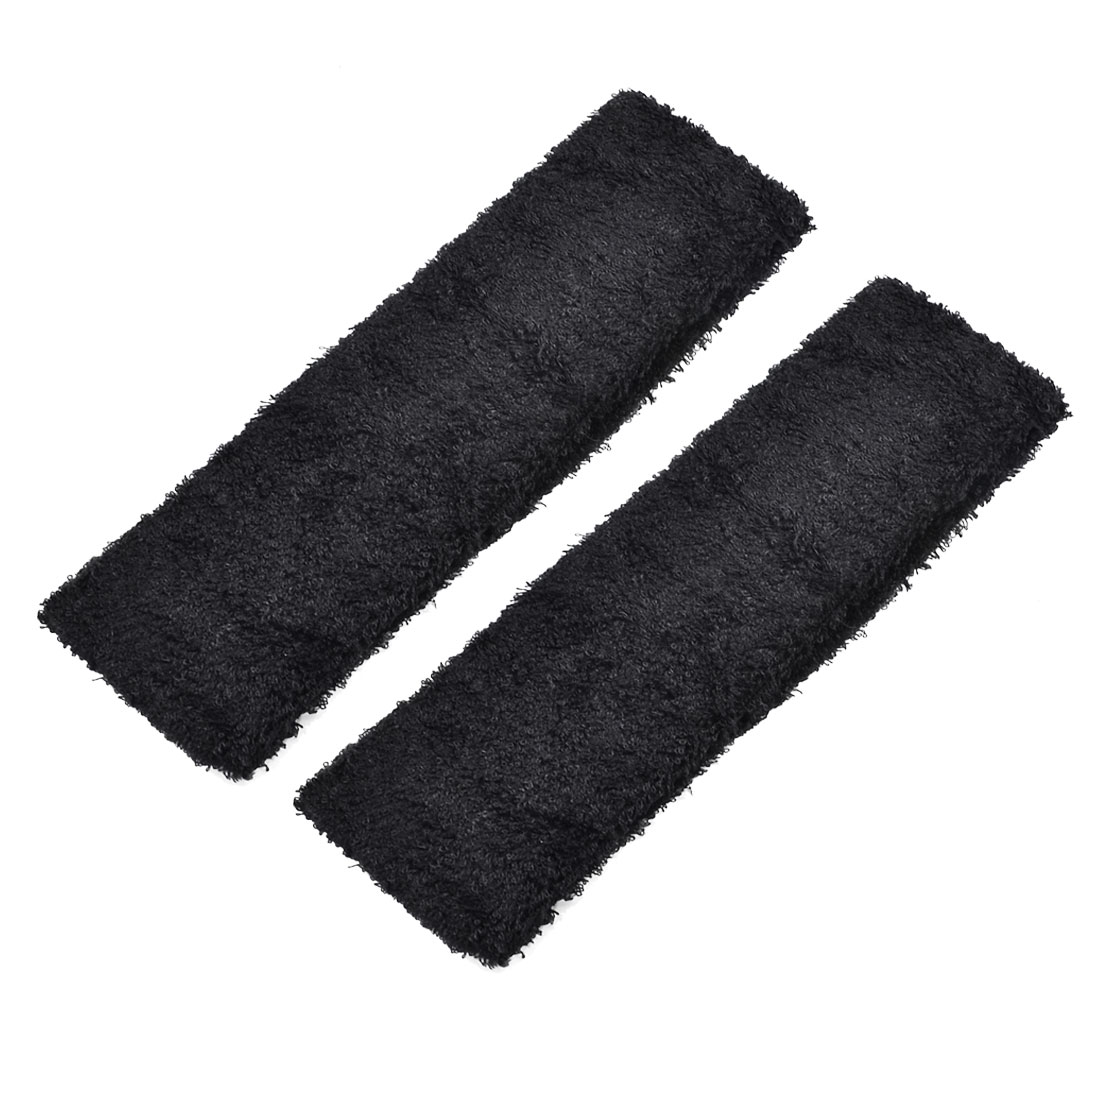 2 PCS Running Exercise Elastic Terry Cloth Headband Sweatband Black